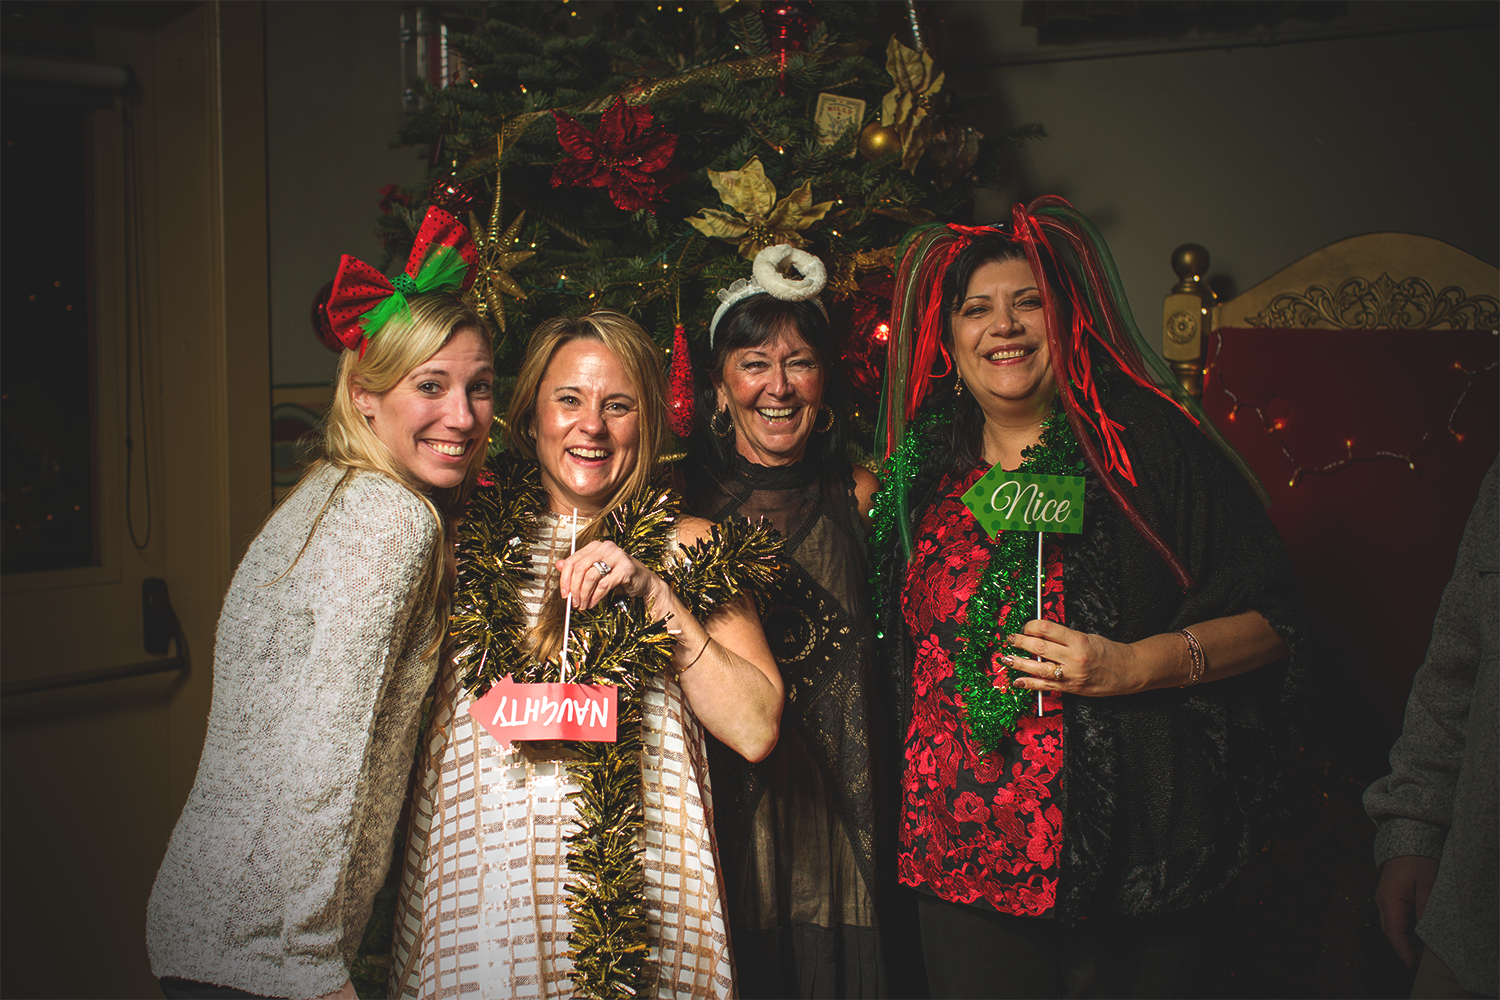 epproperties-vancouver-washington-xmas-party-photolga6.png